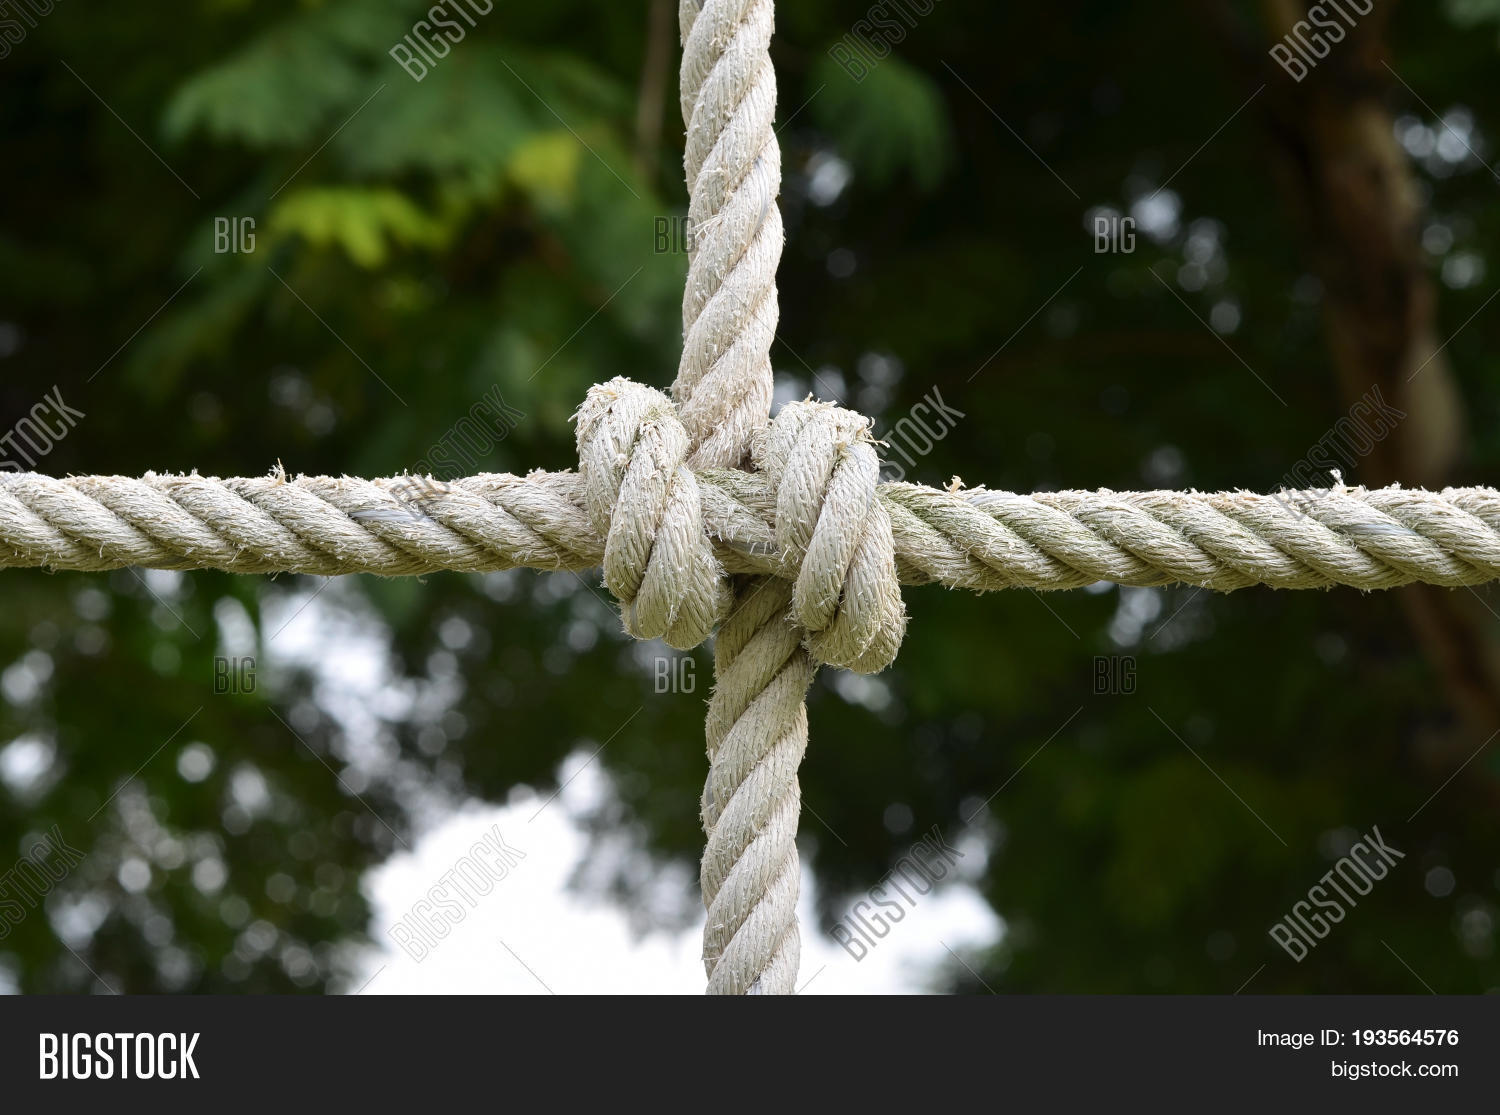 Rope knot line tied together nature image photo bigstock rope knot line tied together with nature backgroundas a symbol for trust teamwork biocorpaavc Choice Image